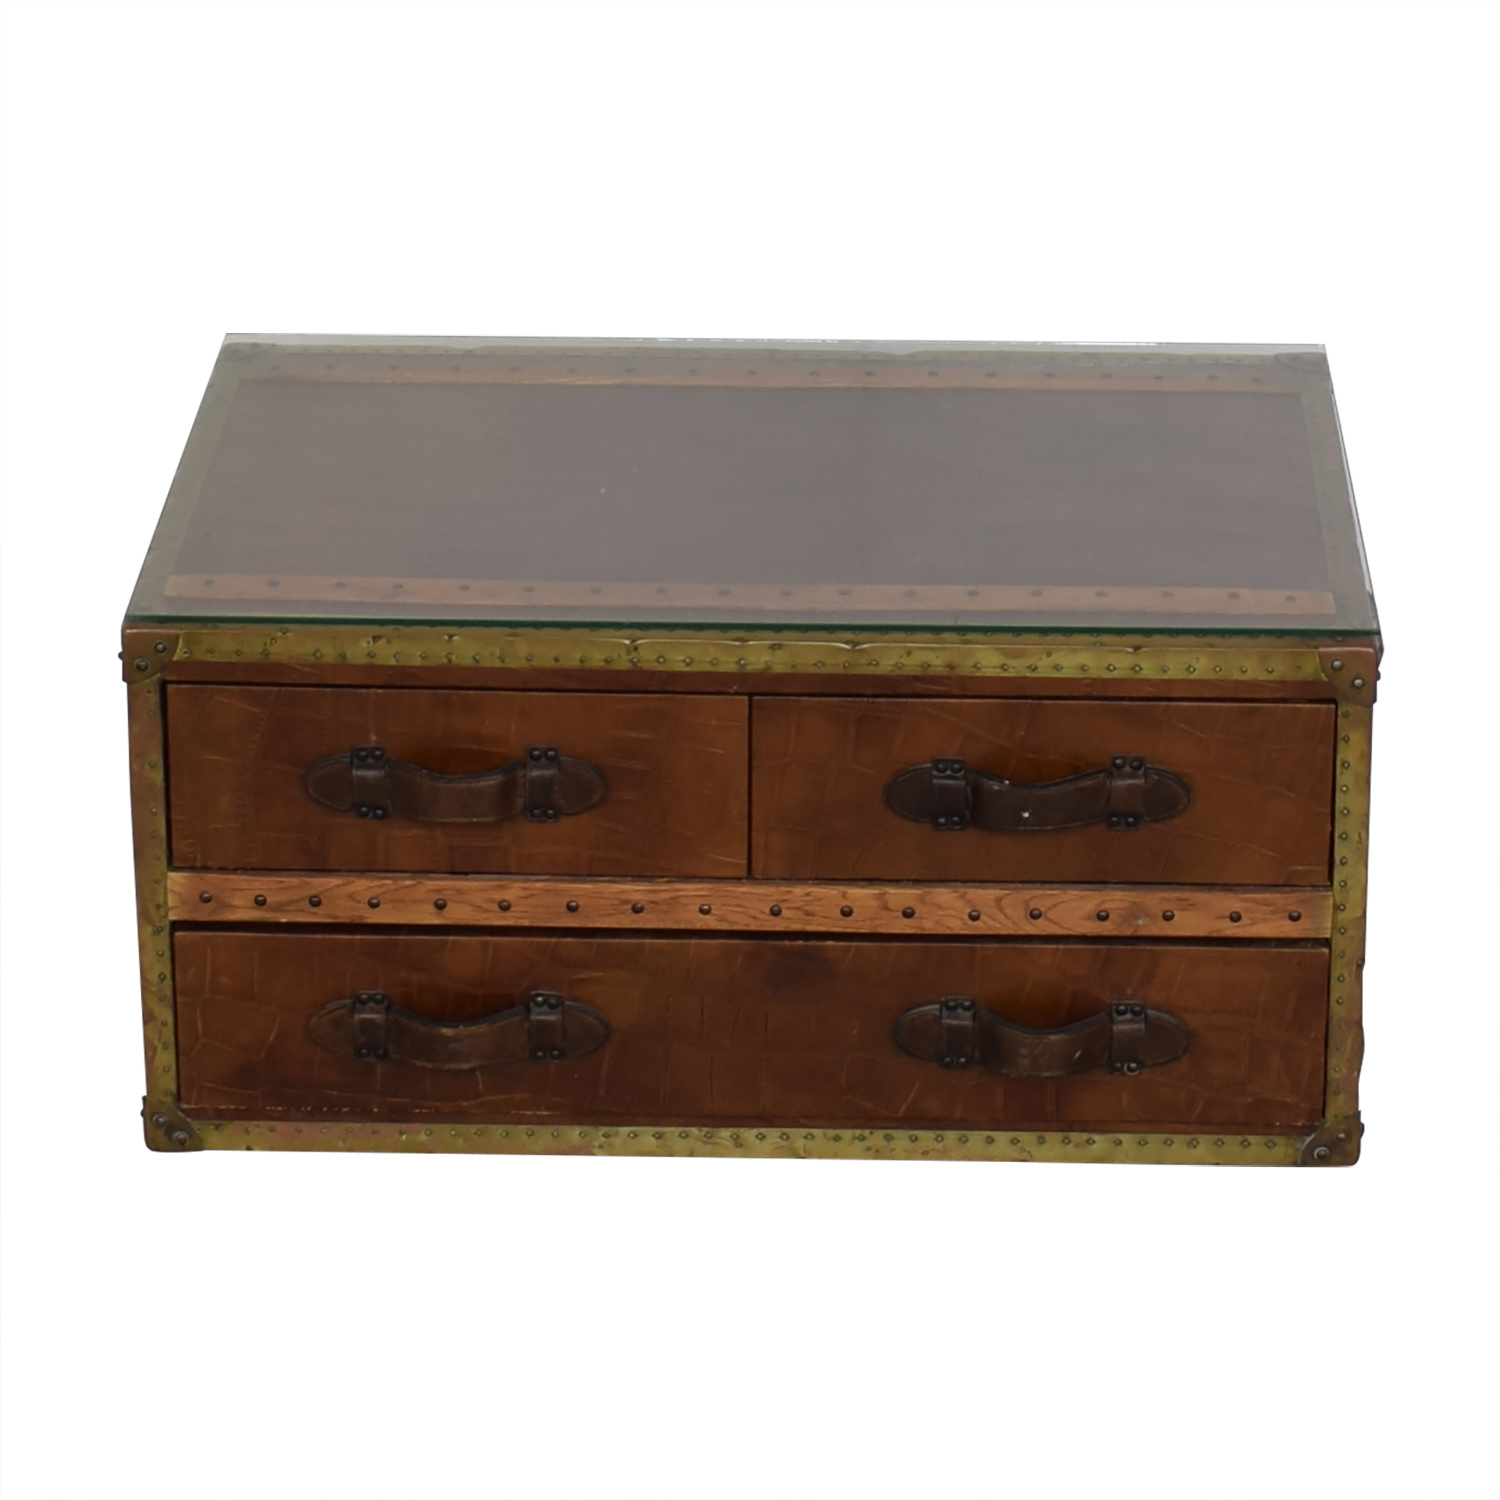 ABC Carpet & Home ABC Carpet & Home Steamer Trunk Coffee Table for sale